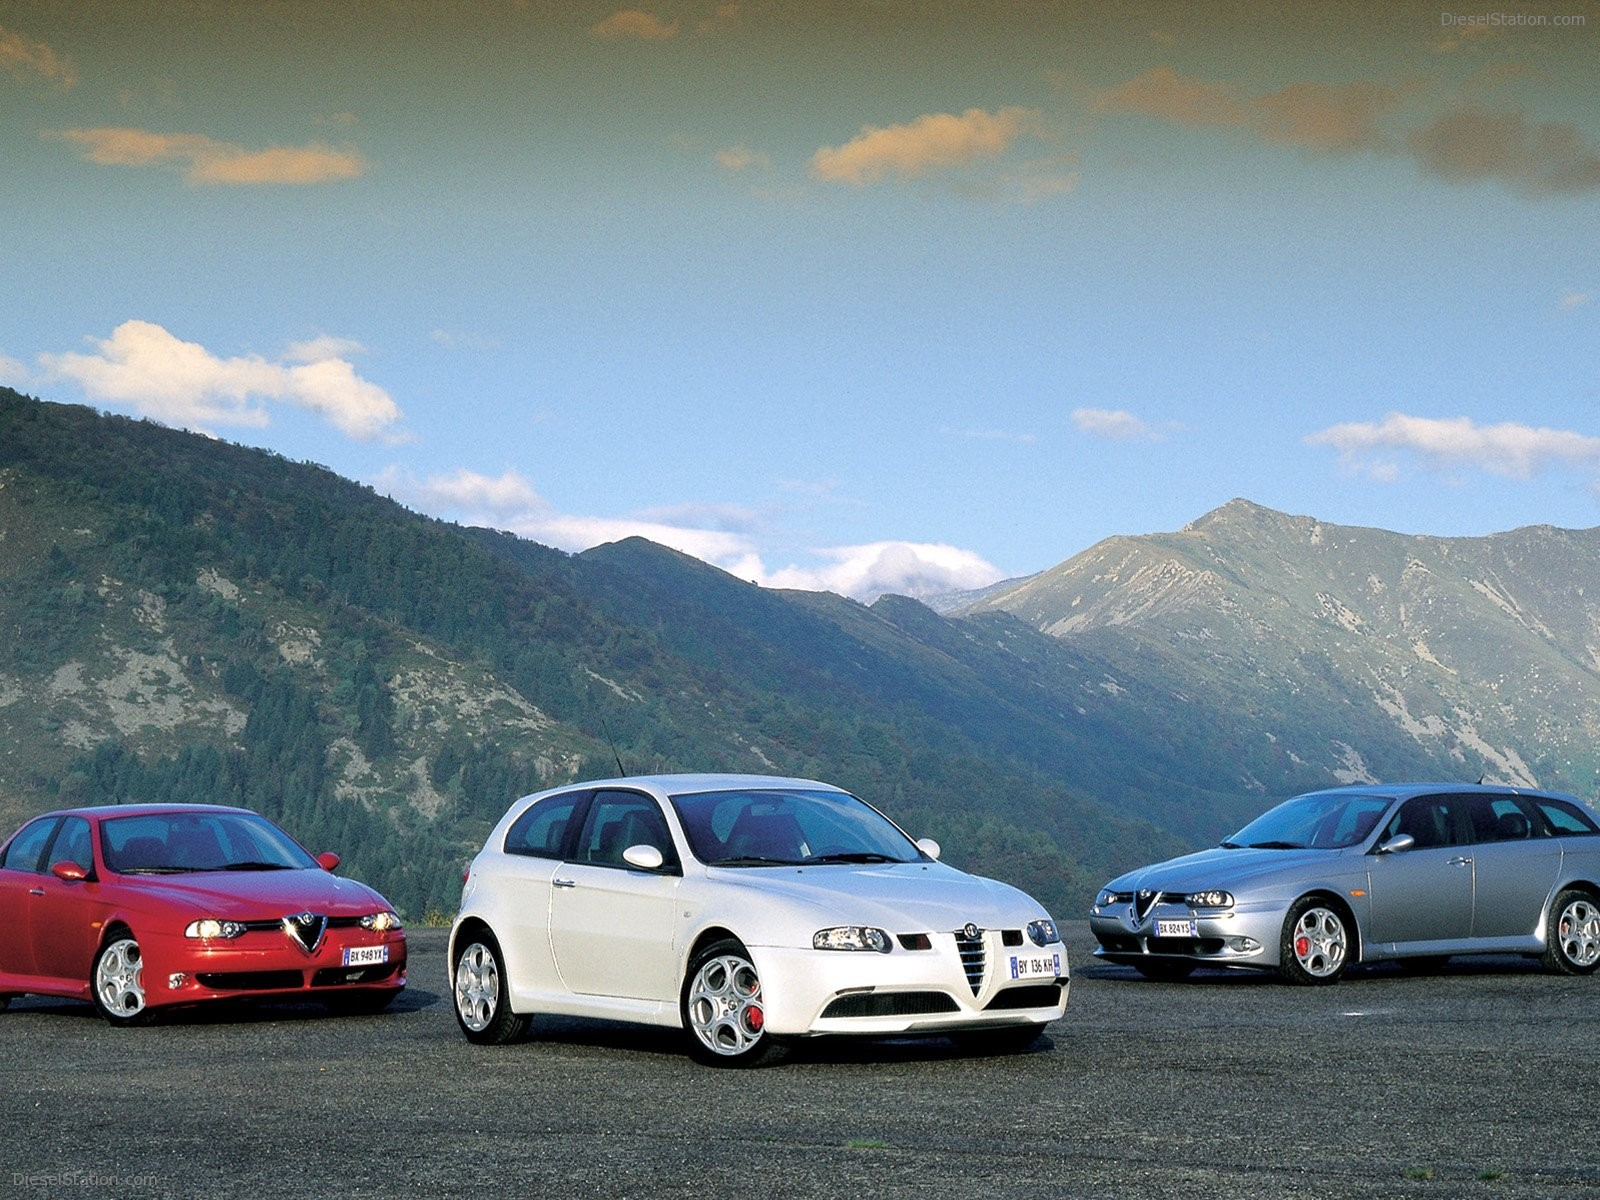 1600x1200 - Alfa Romeo 147 Wallpapers 32